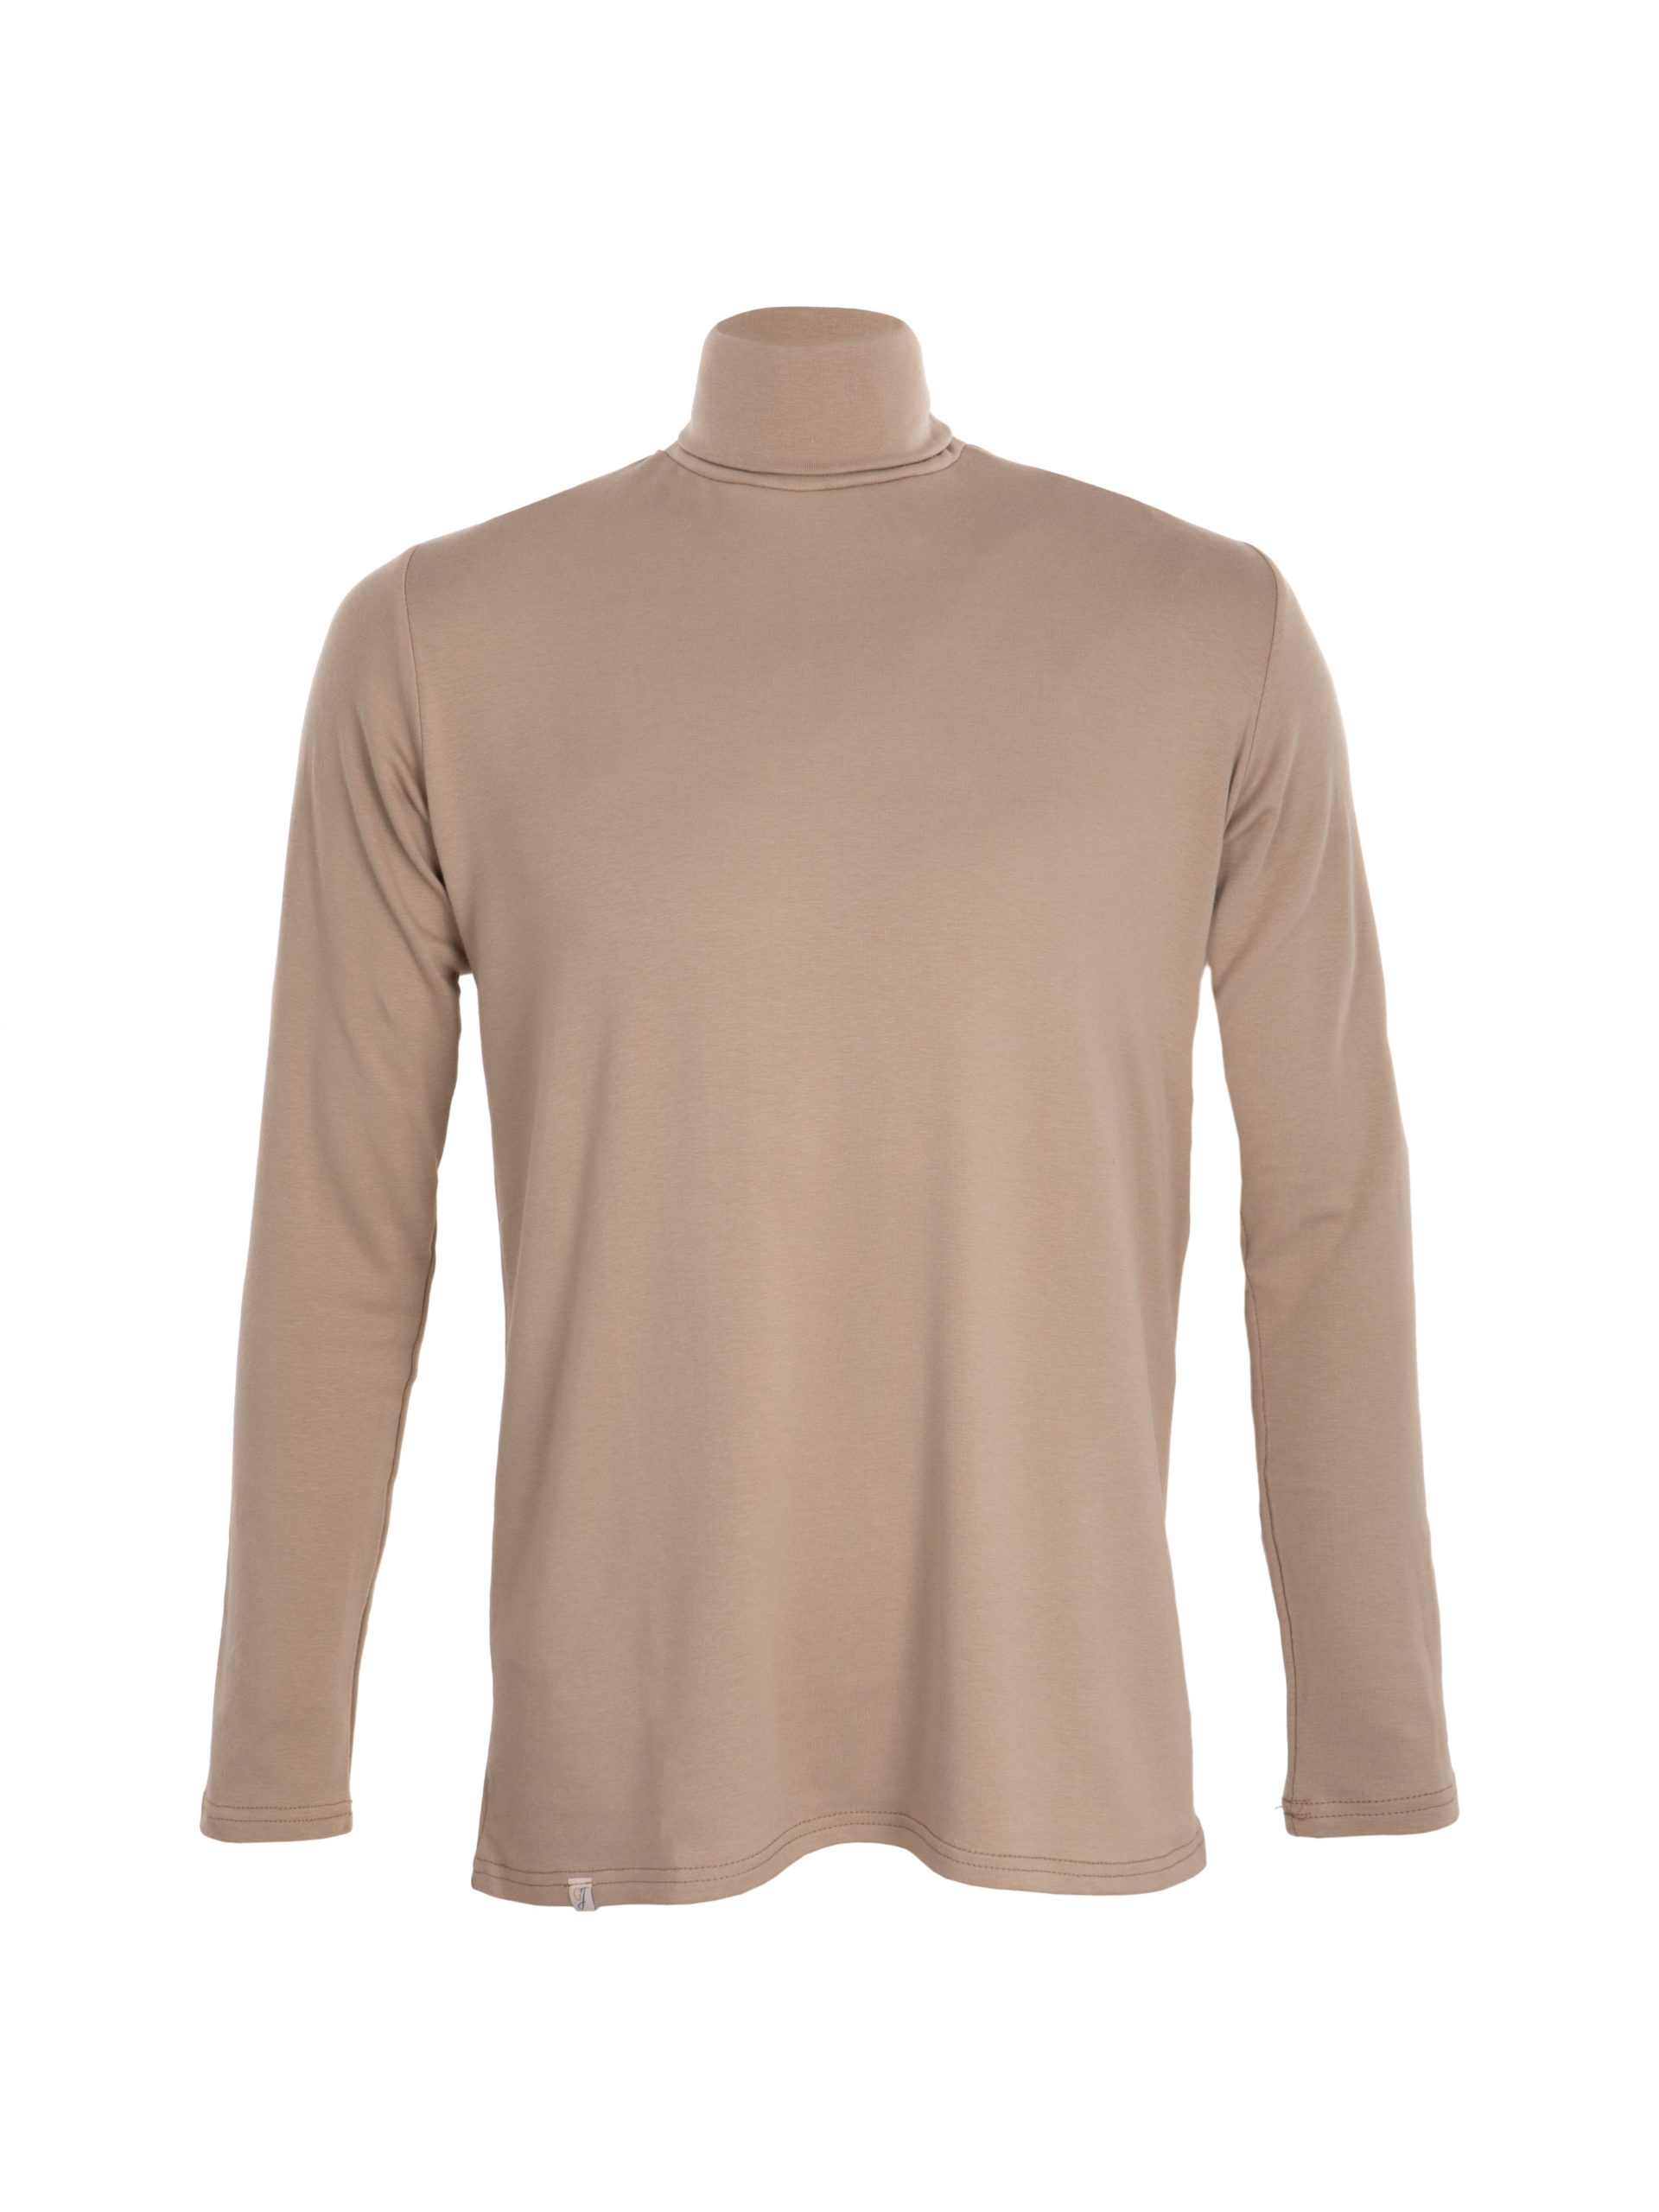 mens polo neck